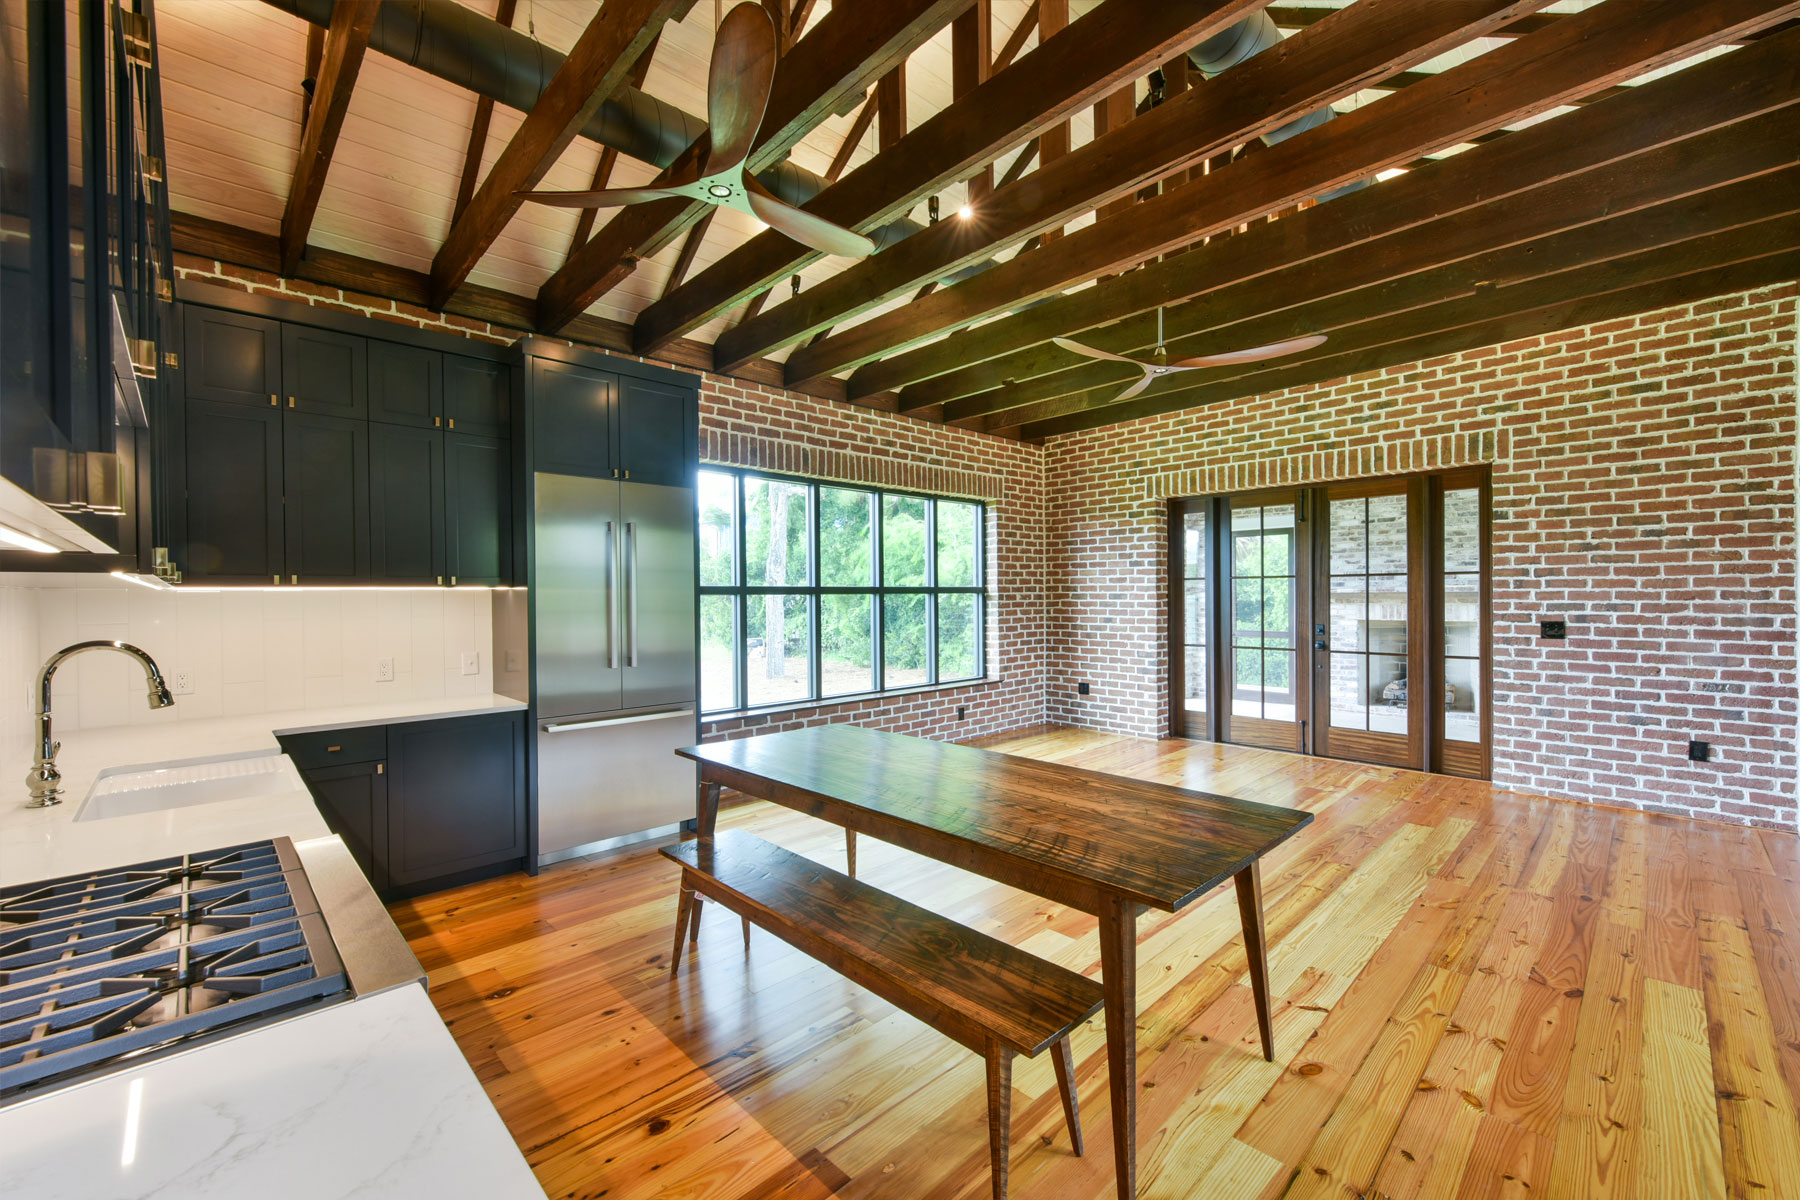 Swallowtail Architecture designs home from converted military building on Sullivan's Island